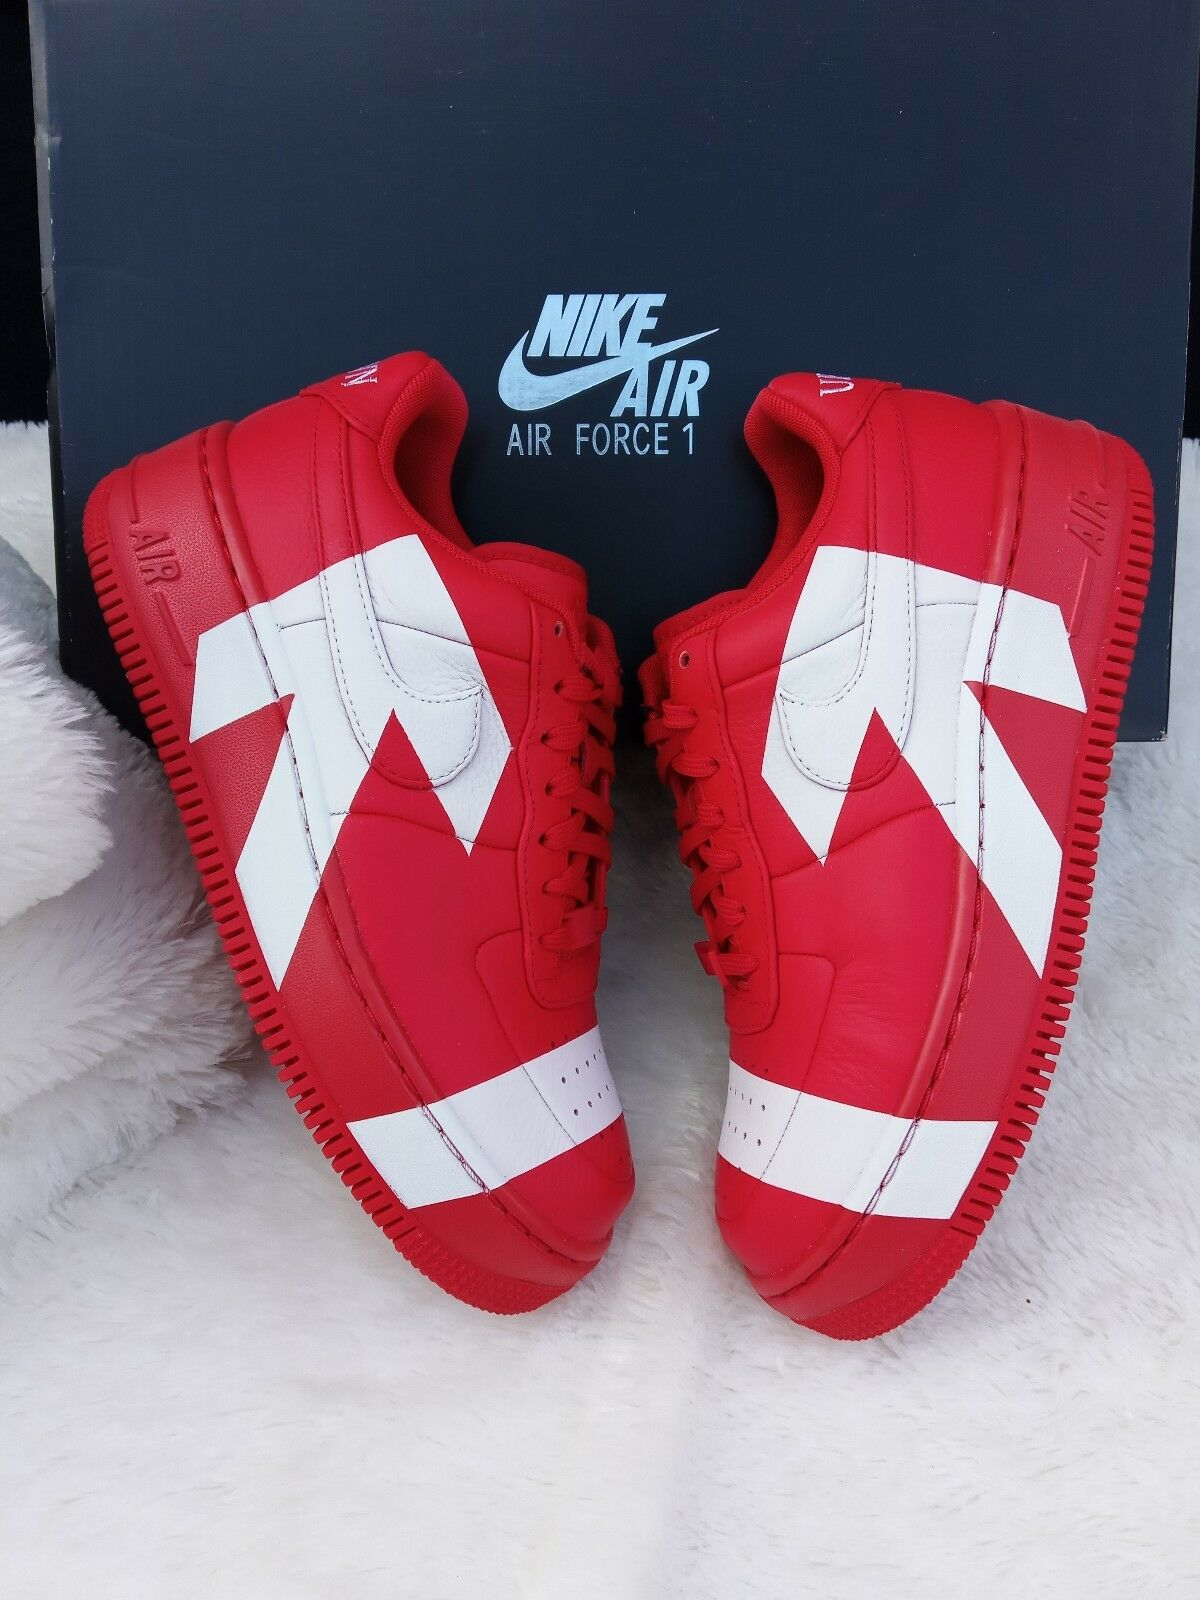 5.5 Women's w Nike Air Force 1 Upstep arrows Uptown 898421-601 Red white casual